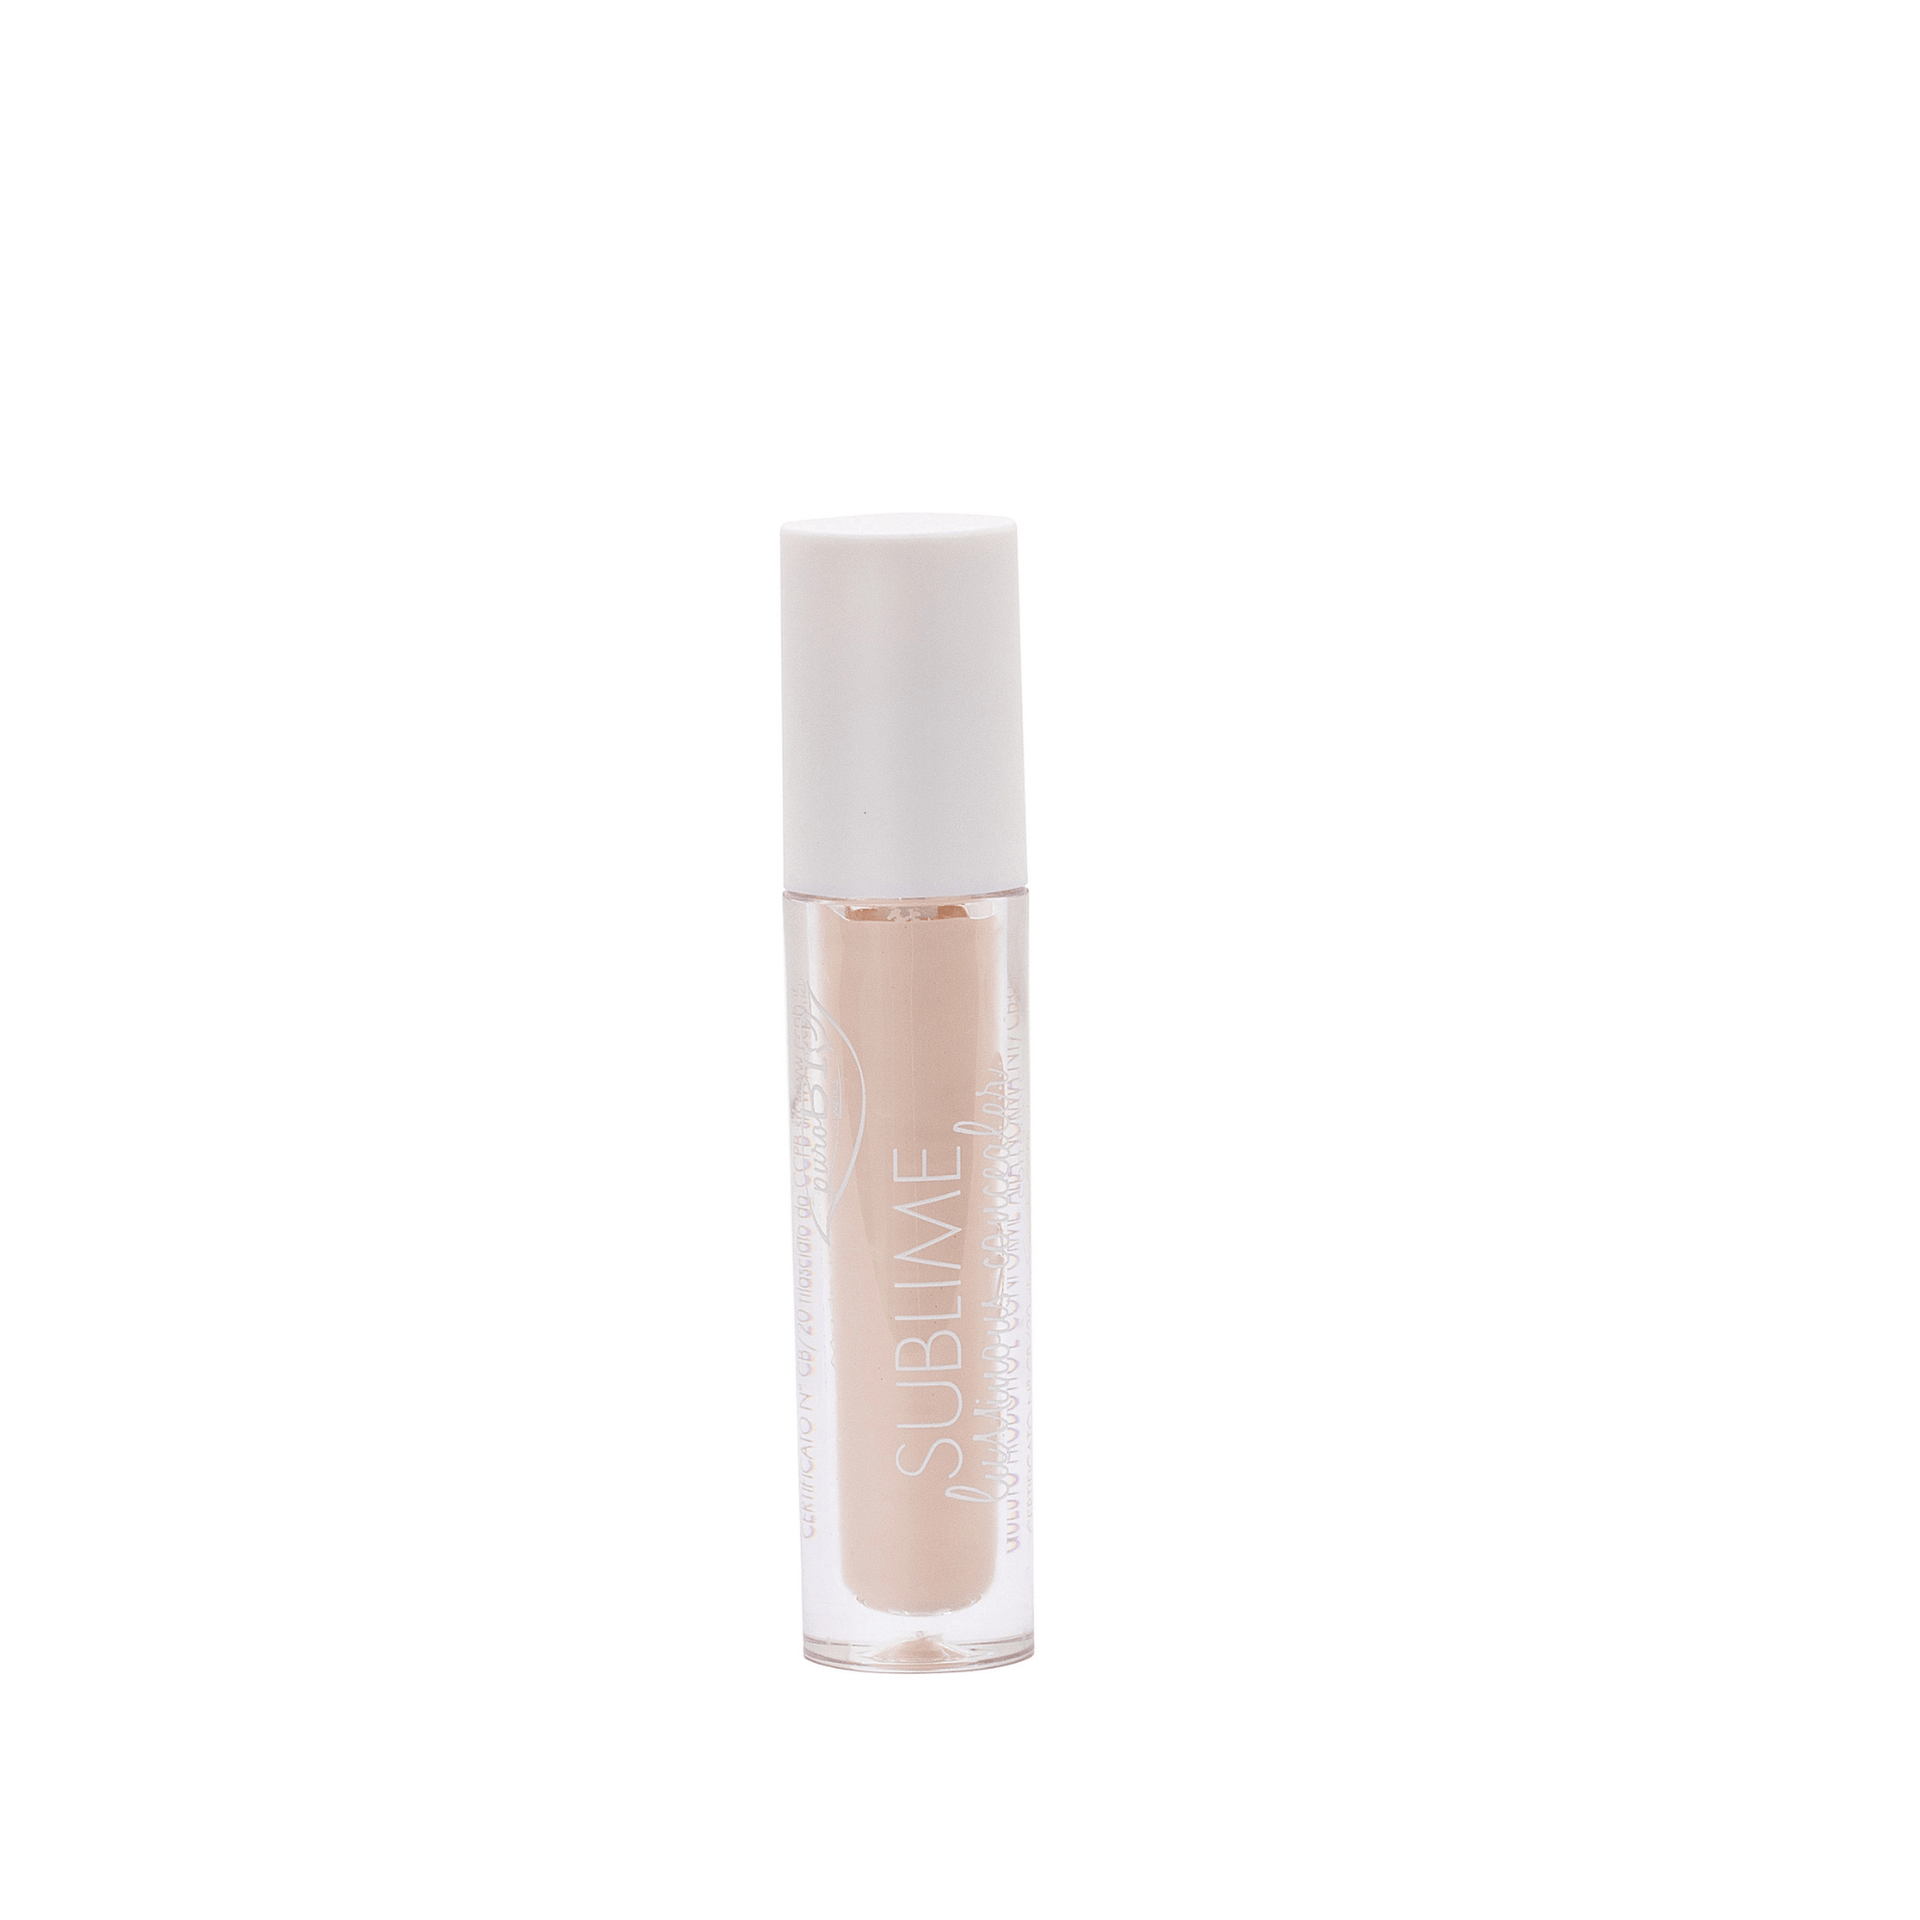 Correttore Illuminante Sublime Luminous Concealer Purobio Cosmetics BellaNaturale Bioprofumeria